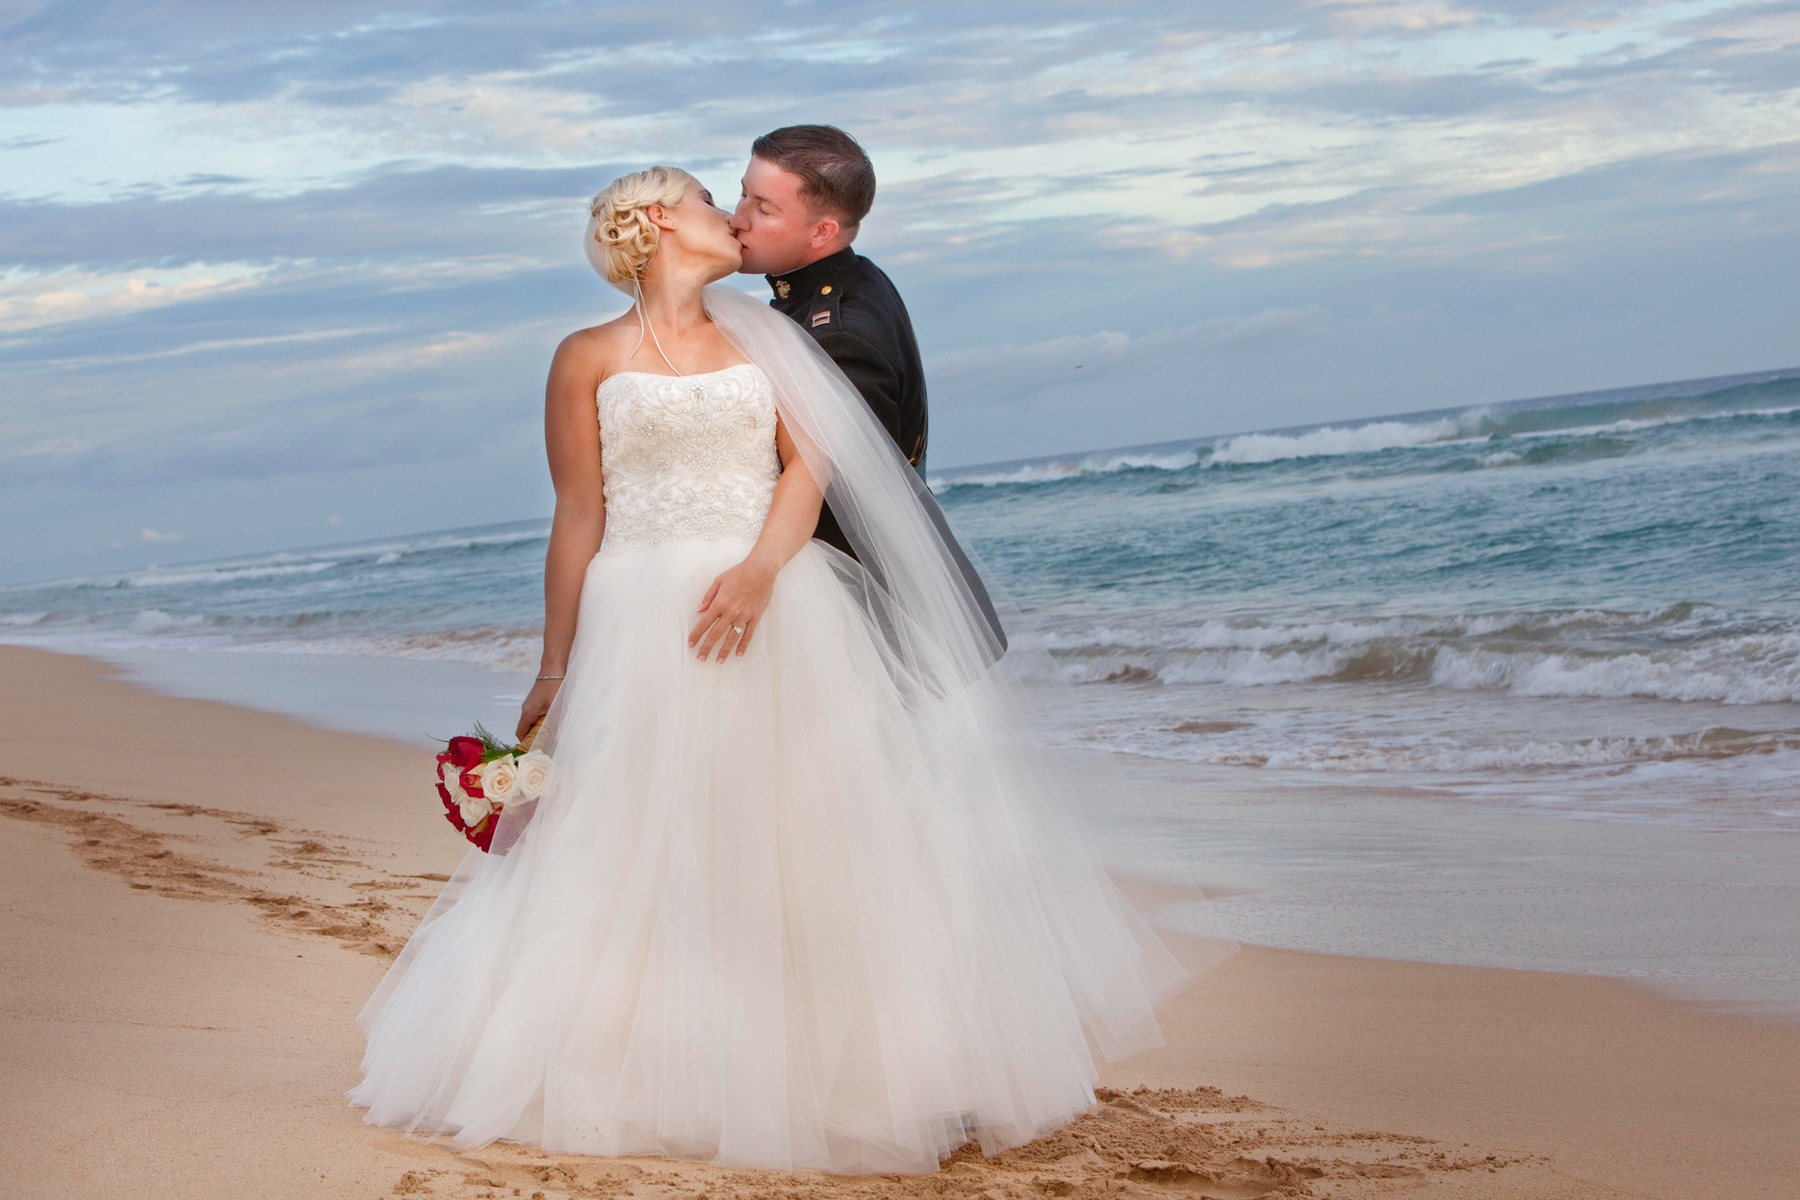 Kauai wedding videographer Difraser 60 - gorgeous bridal videography and photography